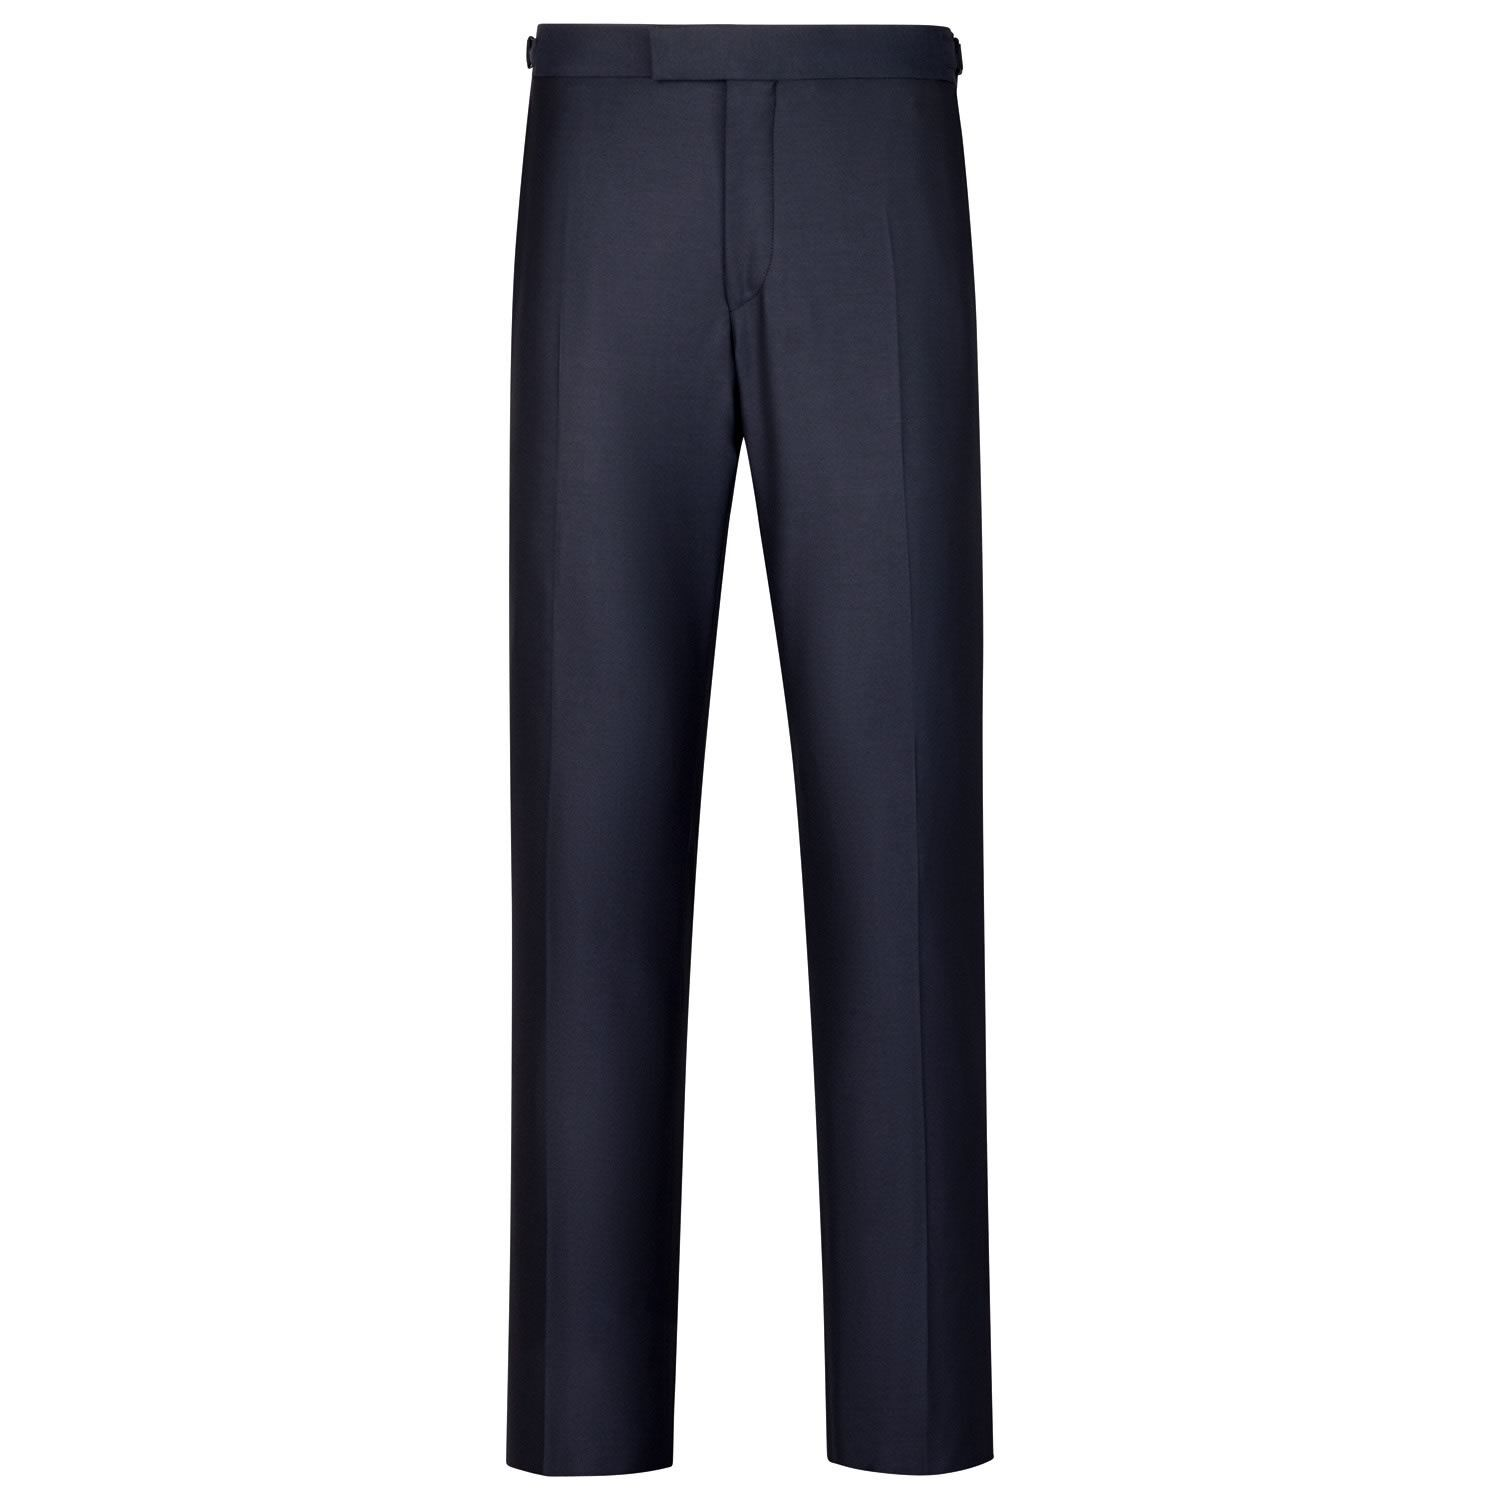 Navy Slim Fit Yorkshire Worsted Luxury Suit Trousers Size W40 L38 by Charles Tyrwhitt